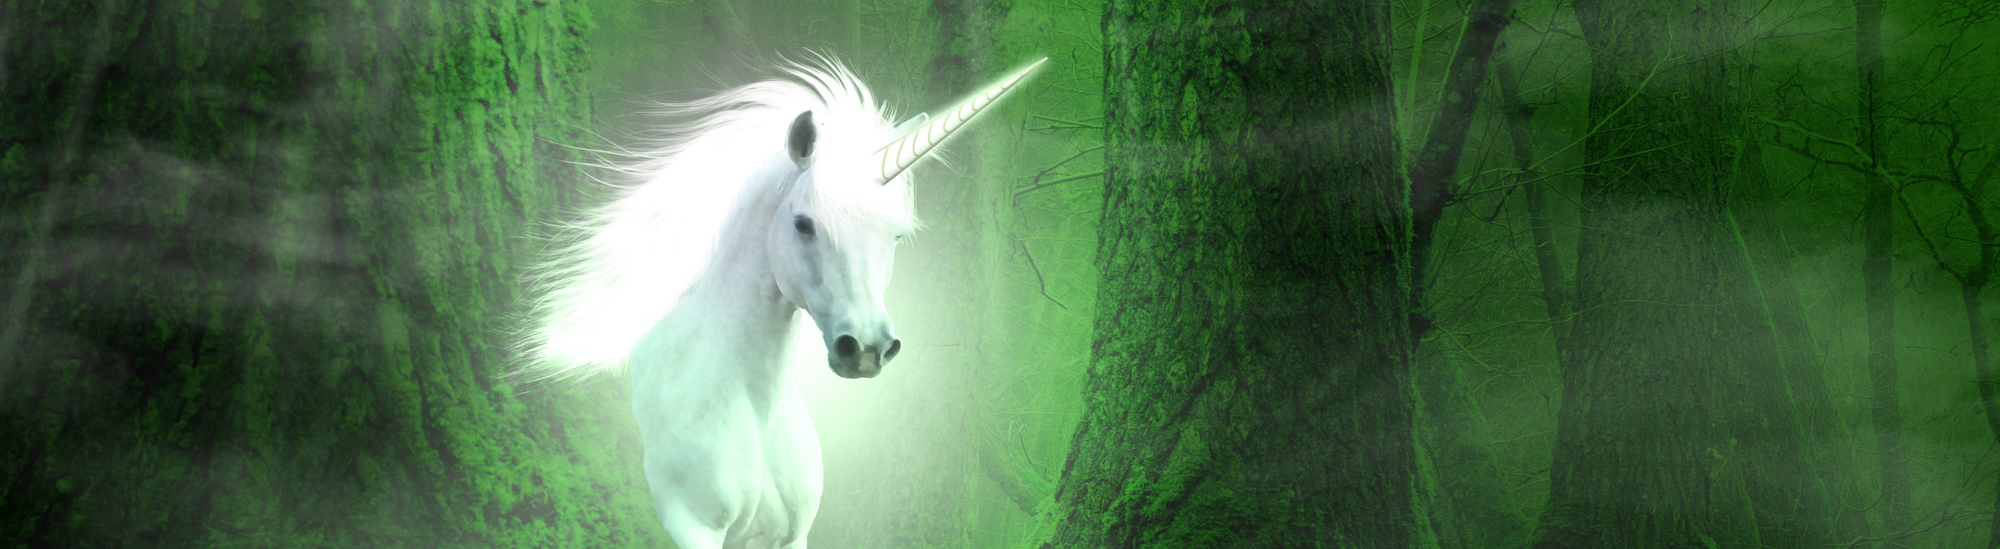 Data Scientists: Why You'll Never Catch the Unicorn